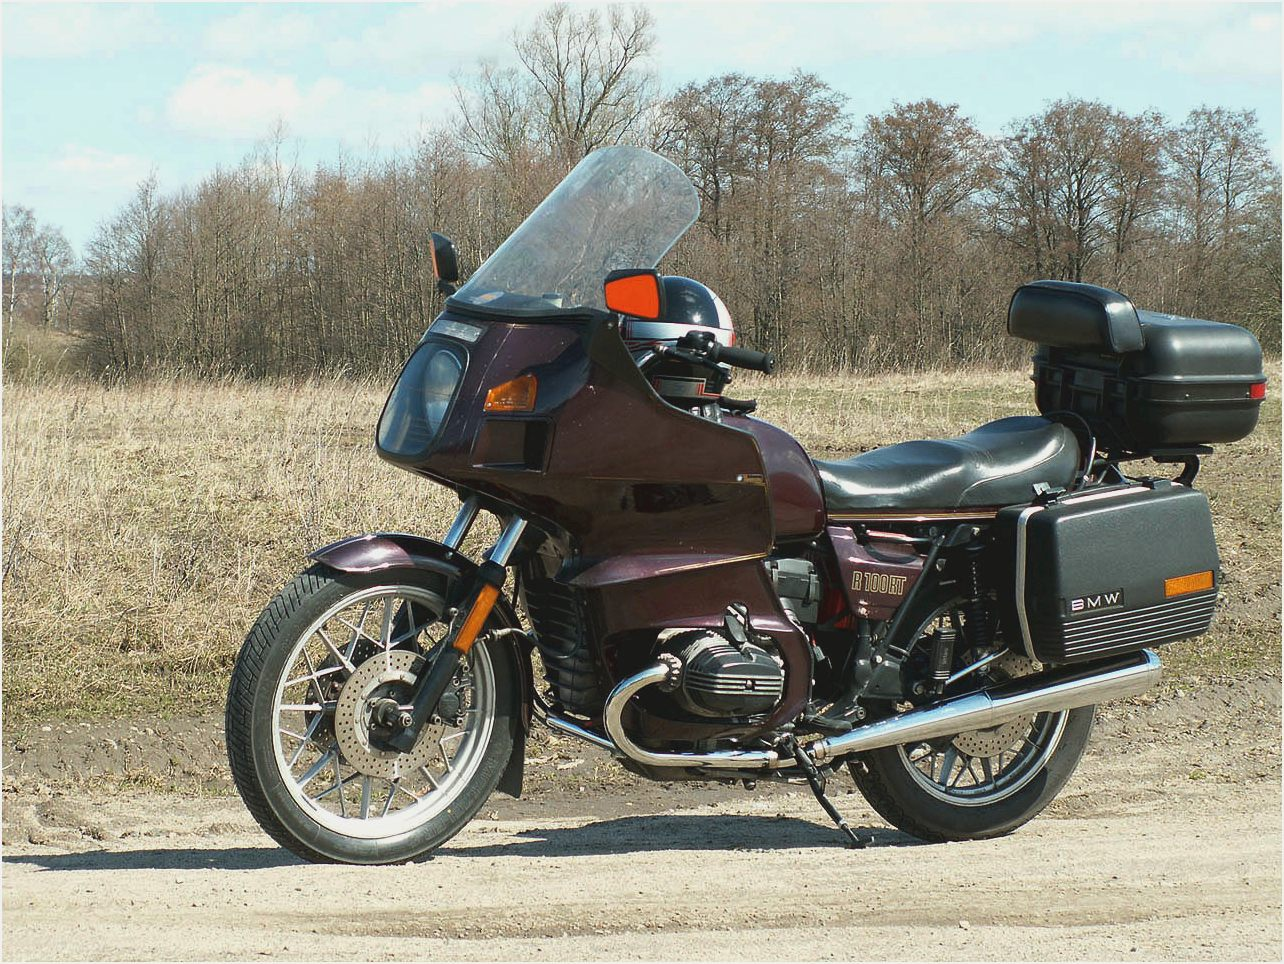 BMW R100RT Mono 1991 images #5229